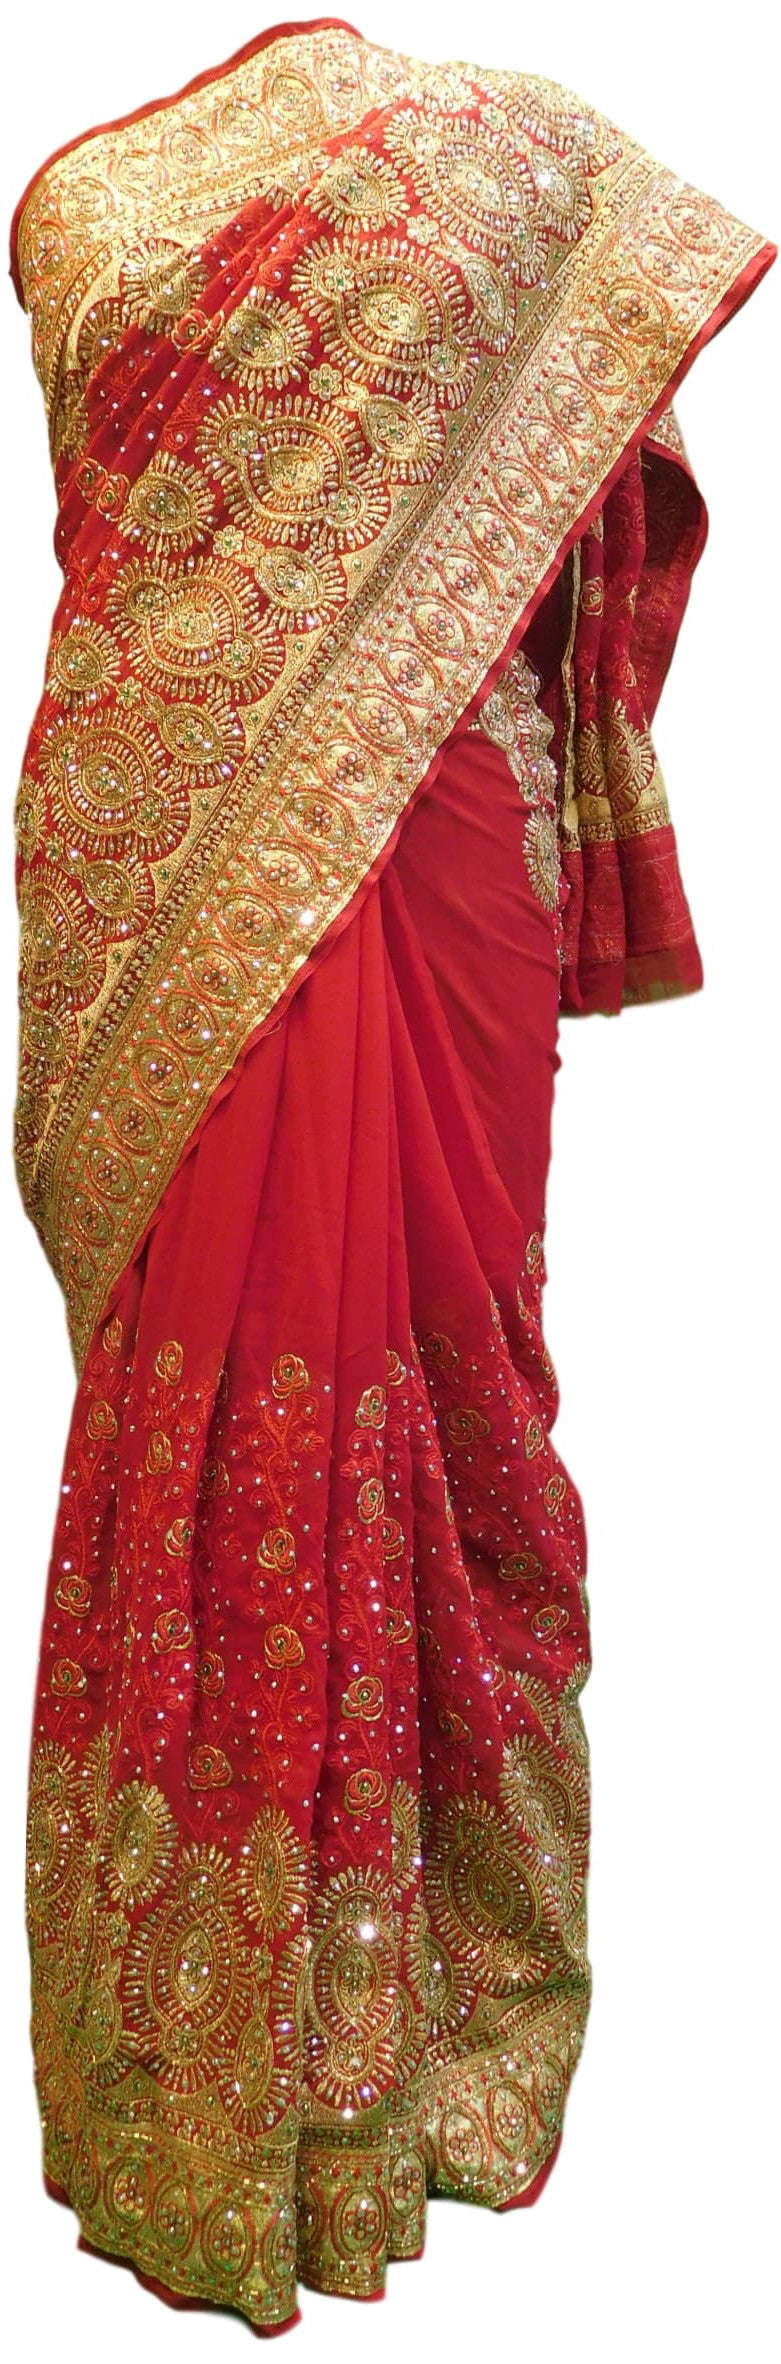 Red Bridal Jhalak Gerogette (Synthetic) Hand Embroidery Stone Border Sari Saree